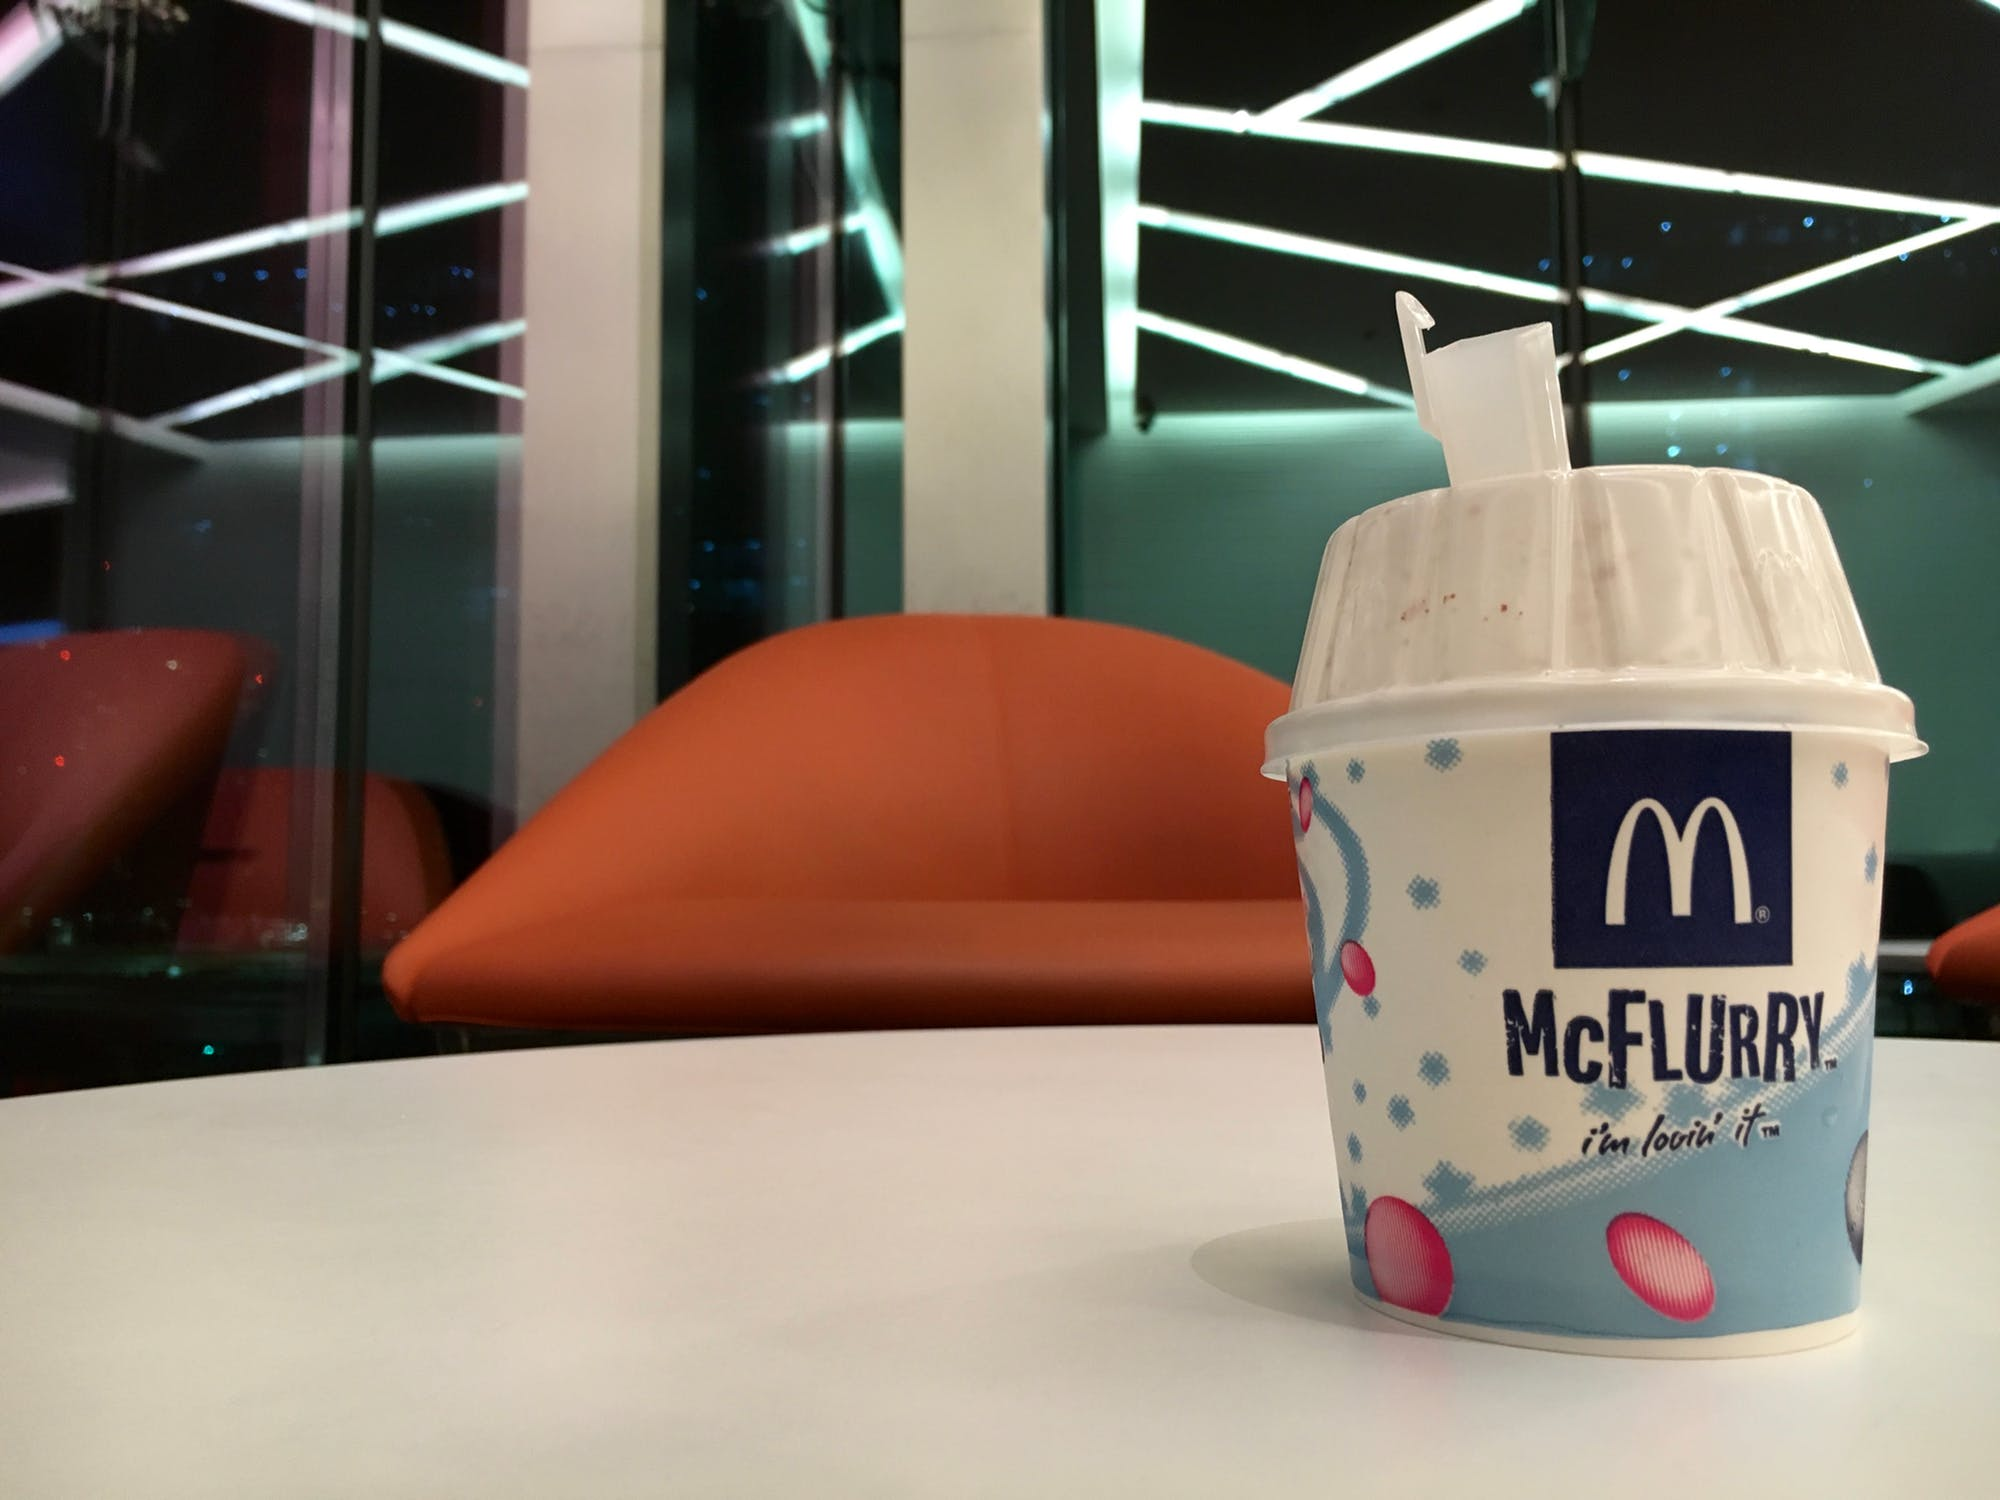 Difference Between Blizzard and McFlurry